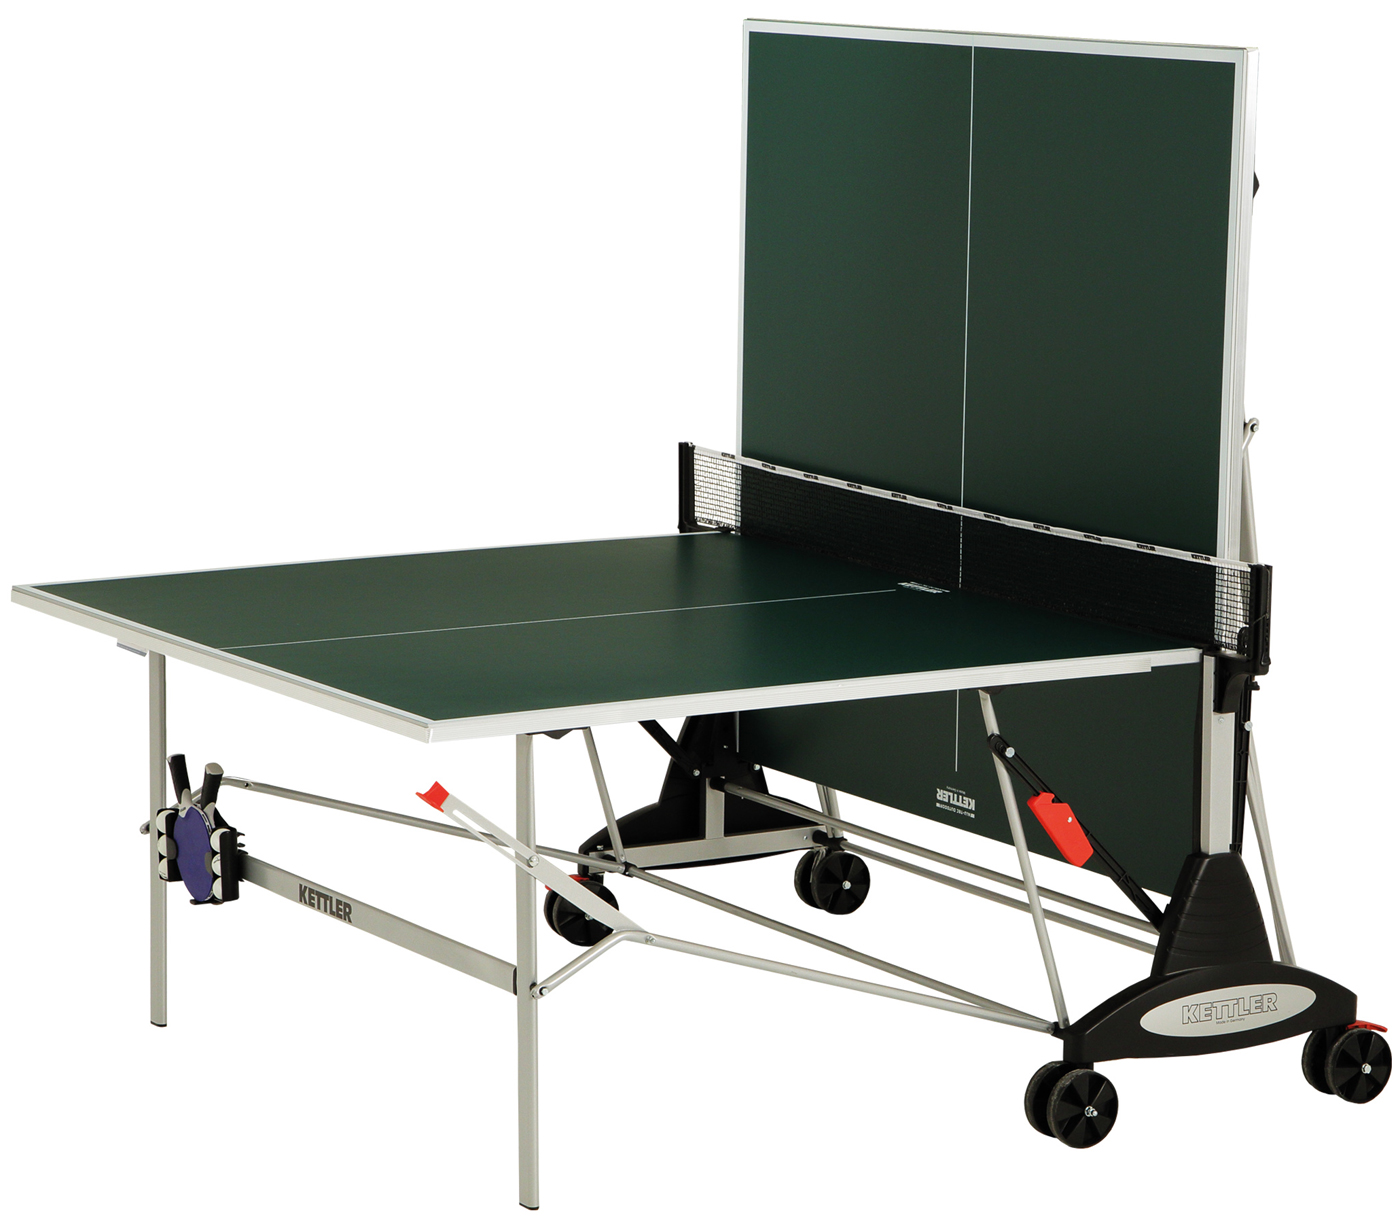 Kettler Stockholm Gt Outdoor Ping Pong Table